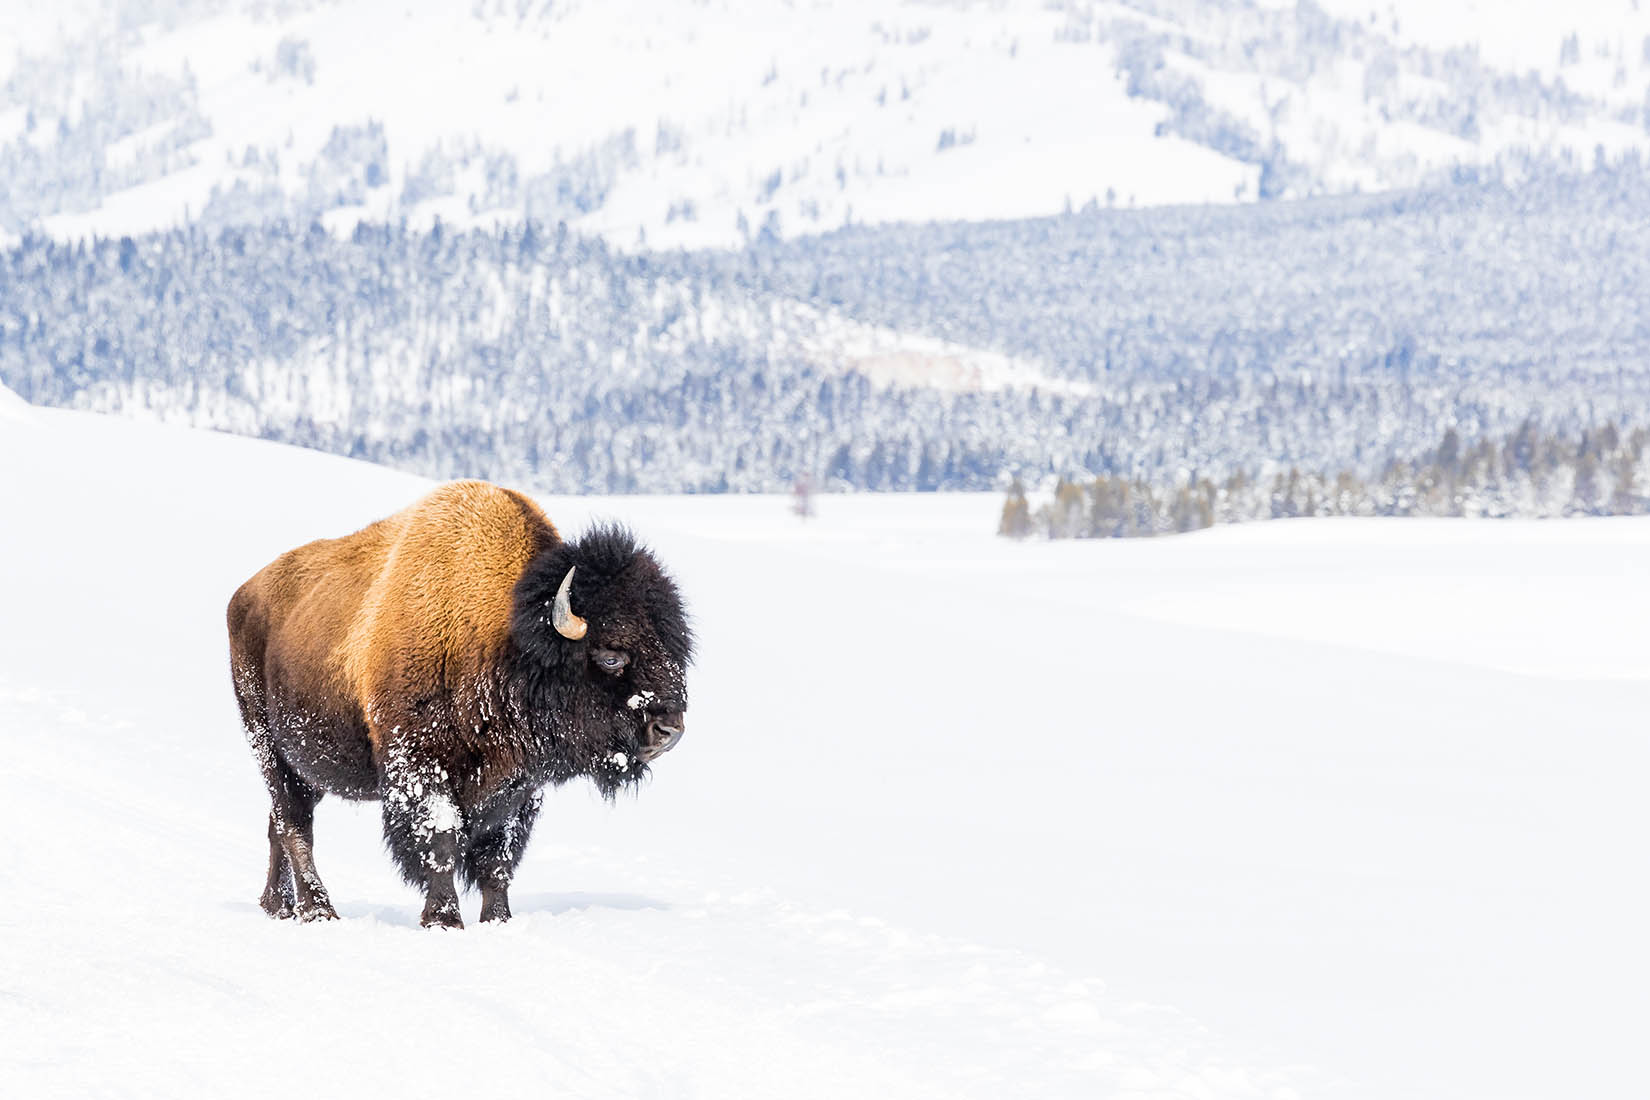 lone bison covered in snow photography in snow